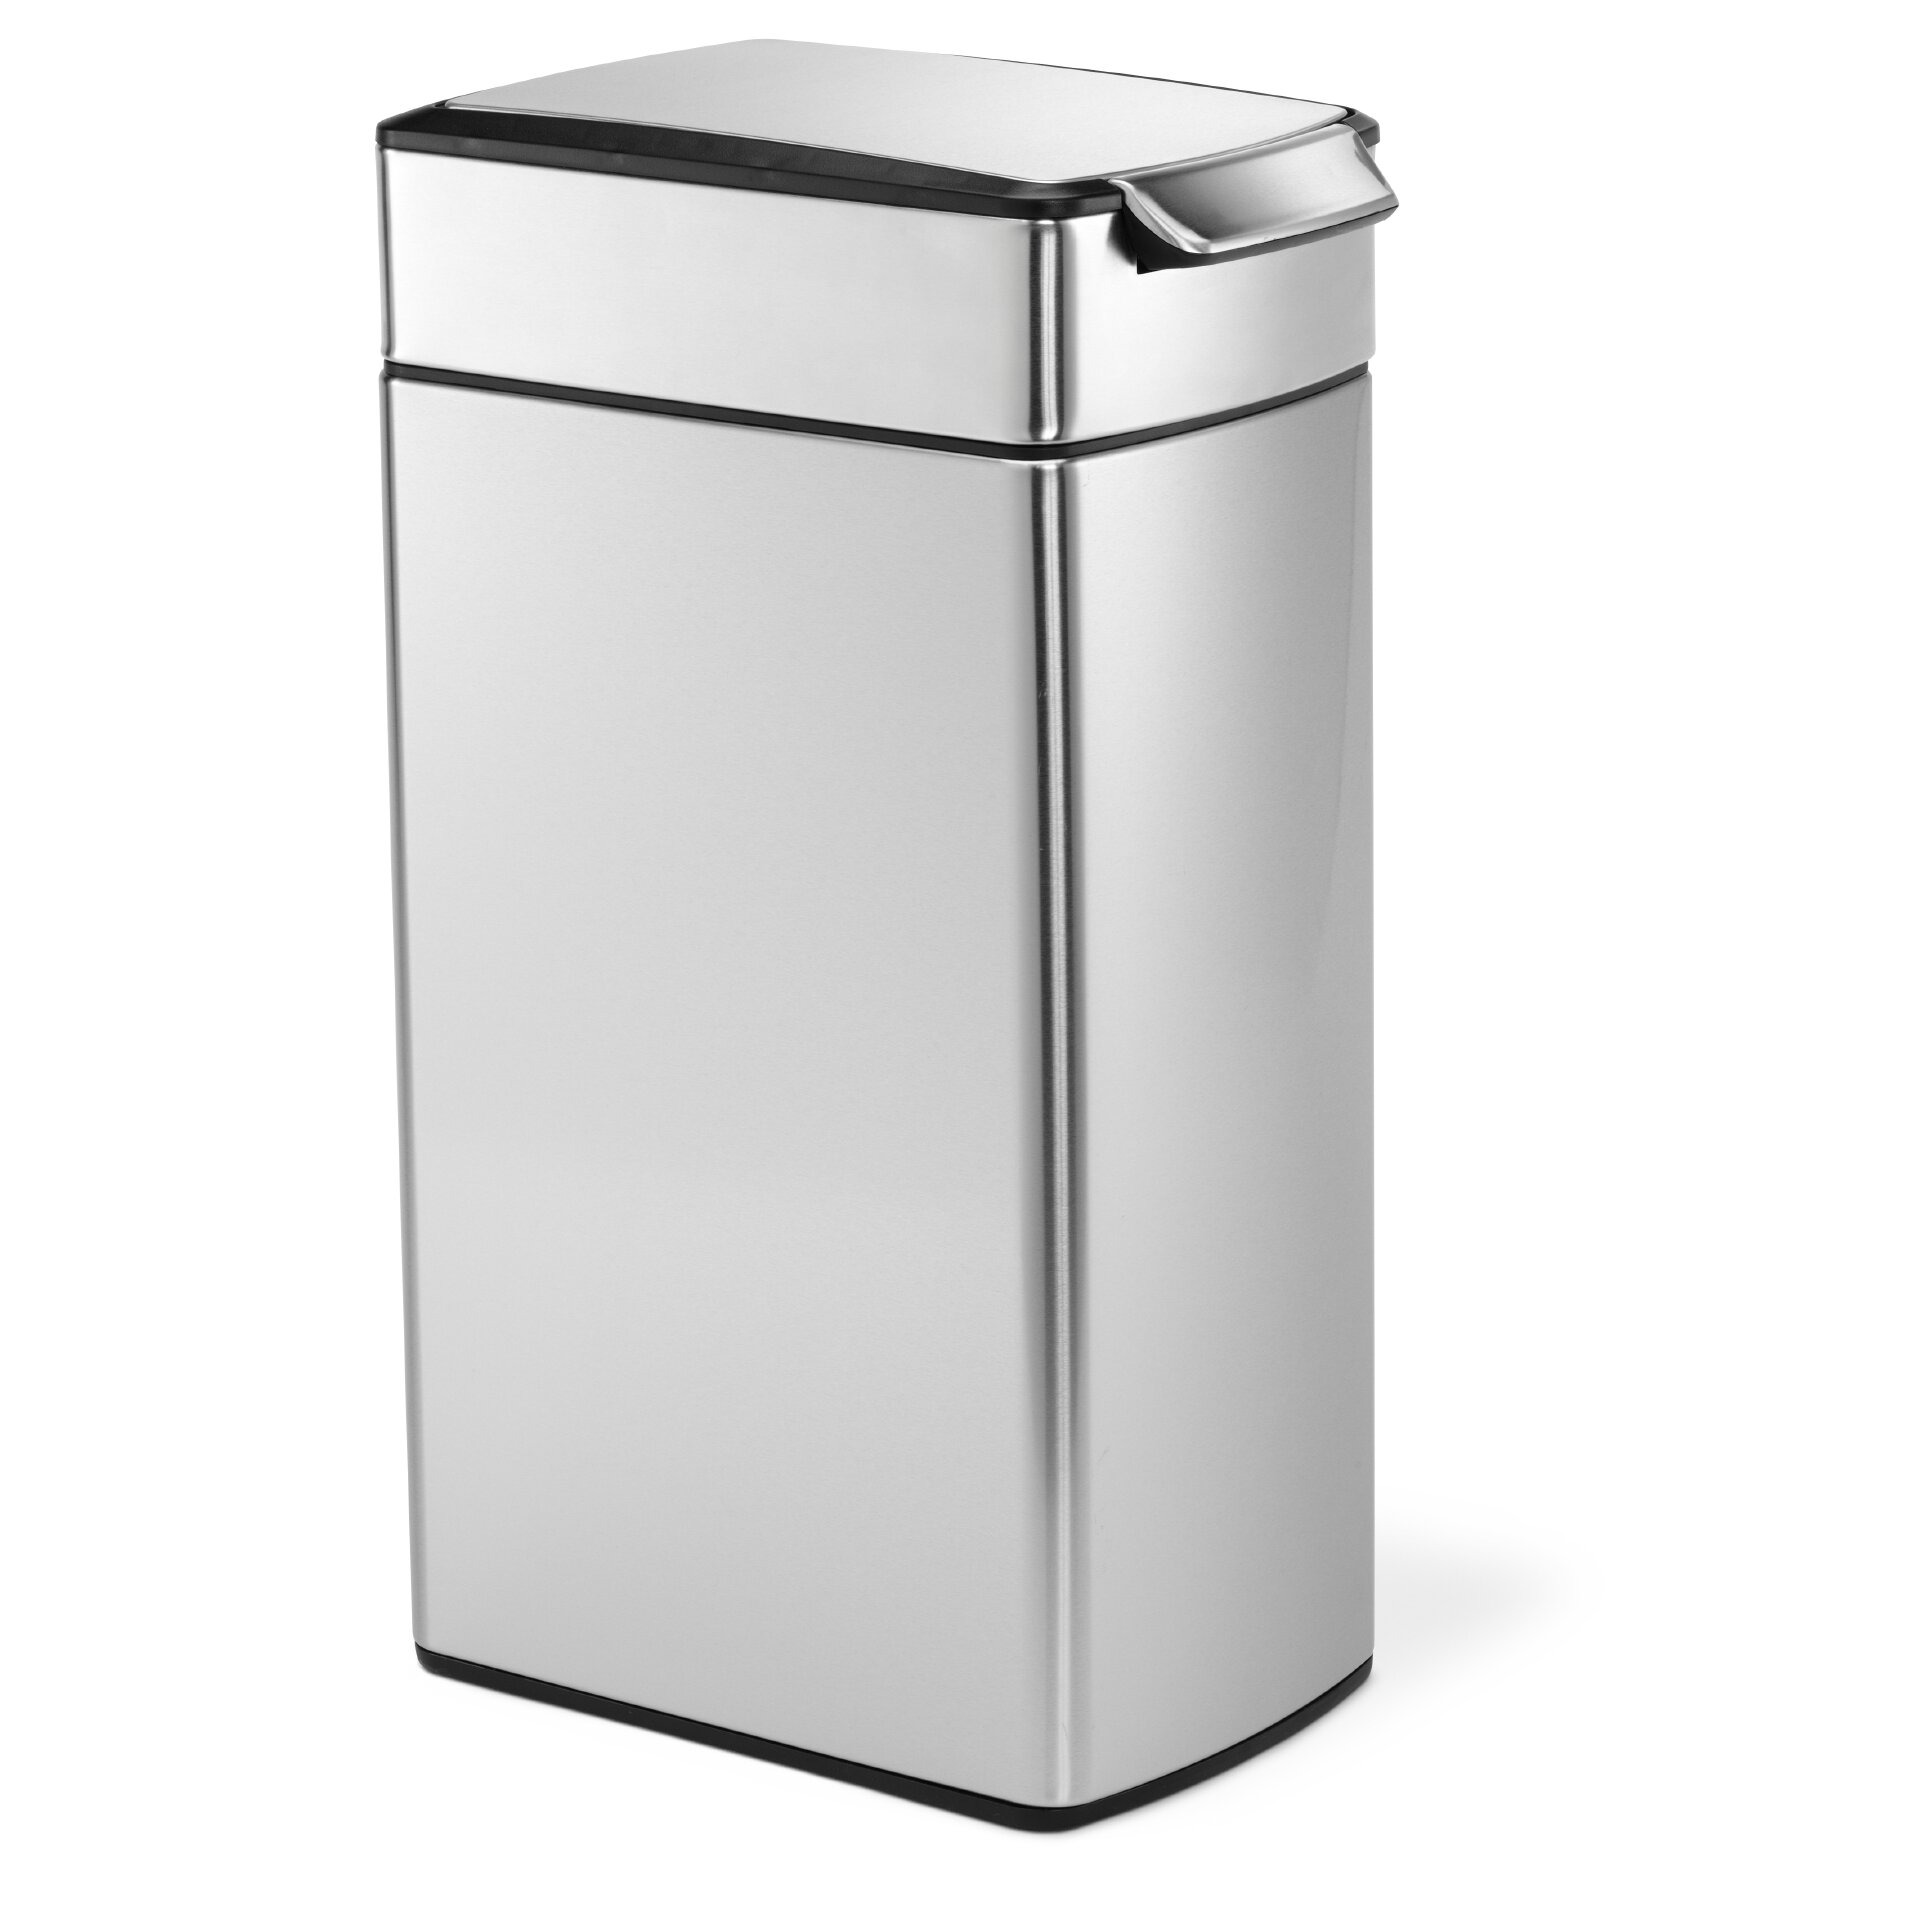 Target Kitchen Trash Cans: Simplehuman 10.5 Gallon Touch Top Stainless Steel Trash